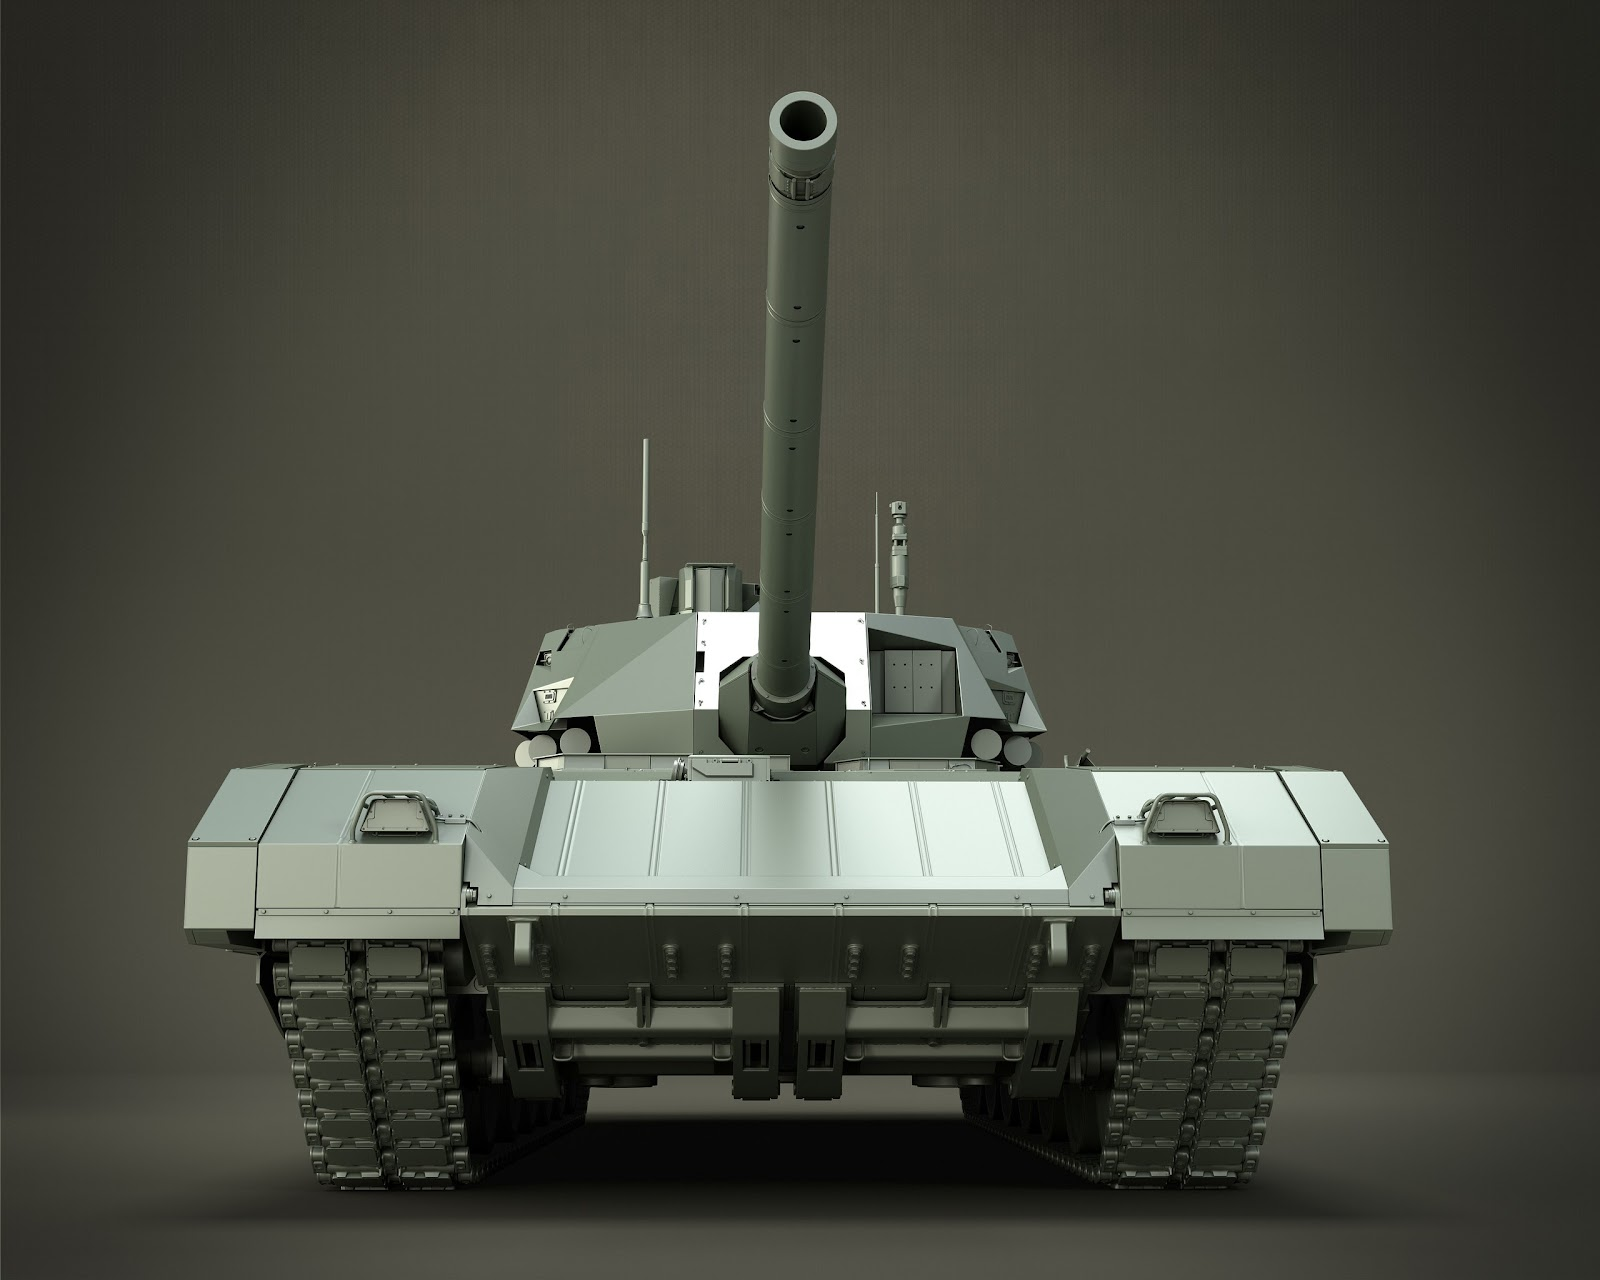 [Official] Armata Discussion thread #3 - Page 39 6sBId4hJw9A